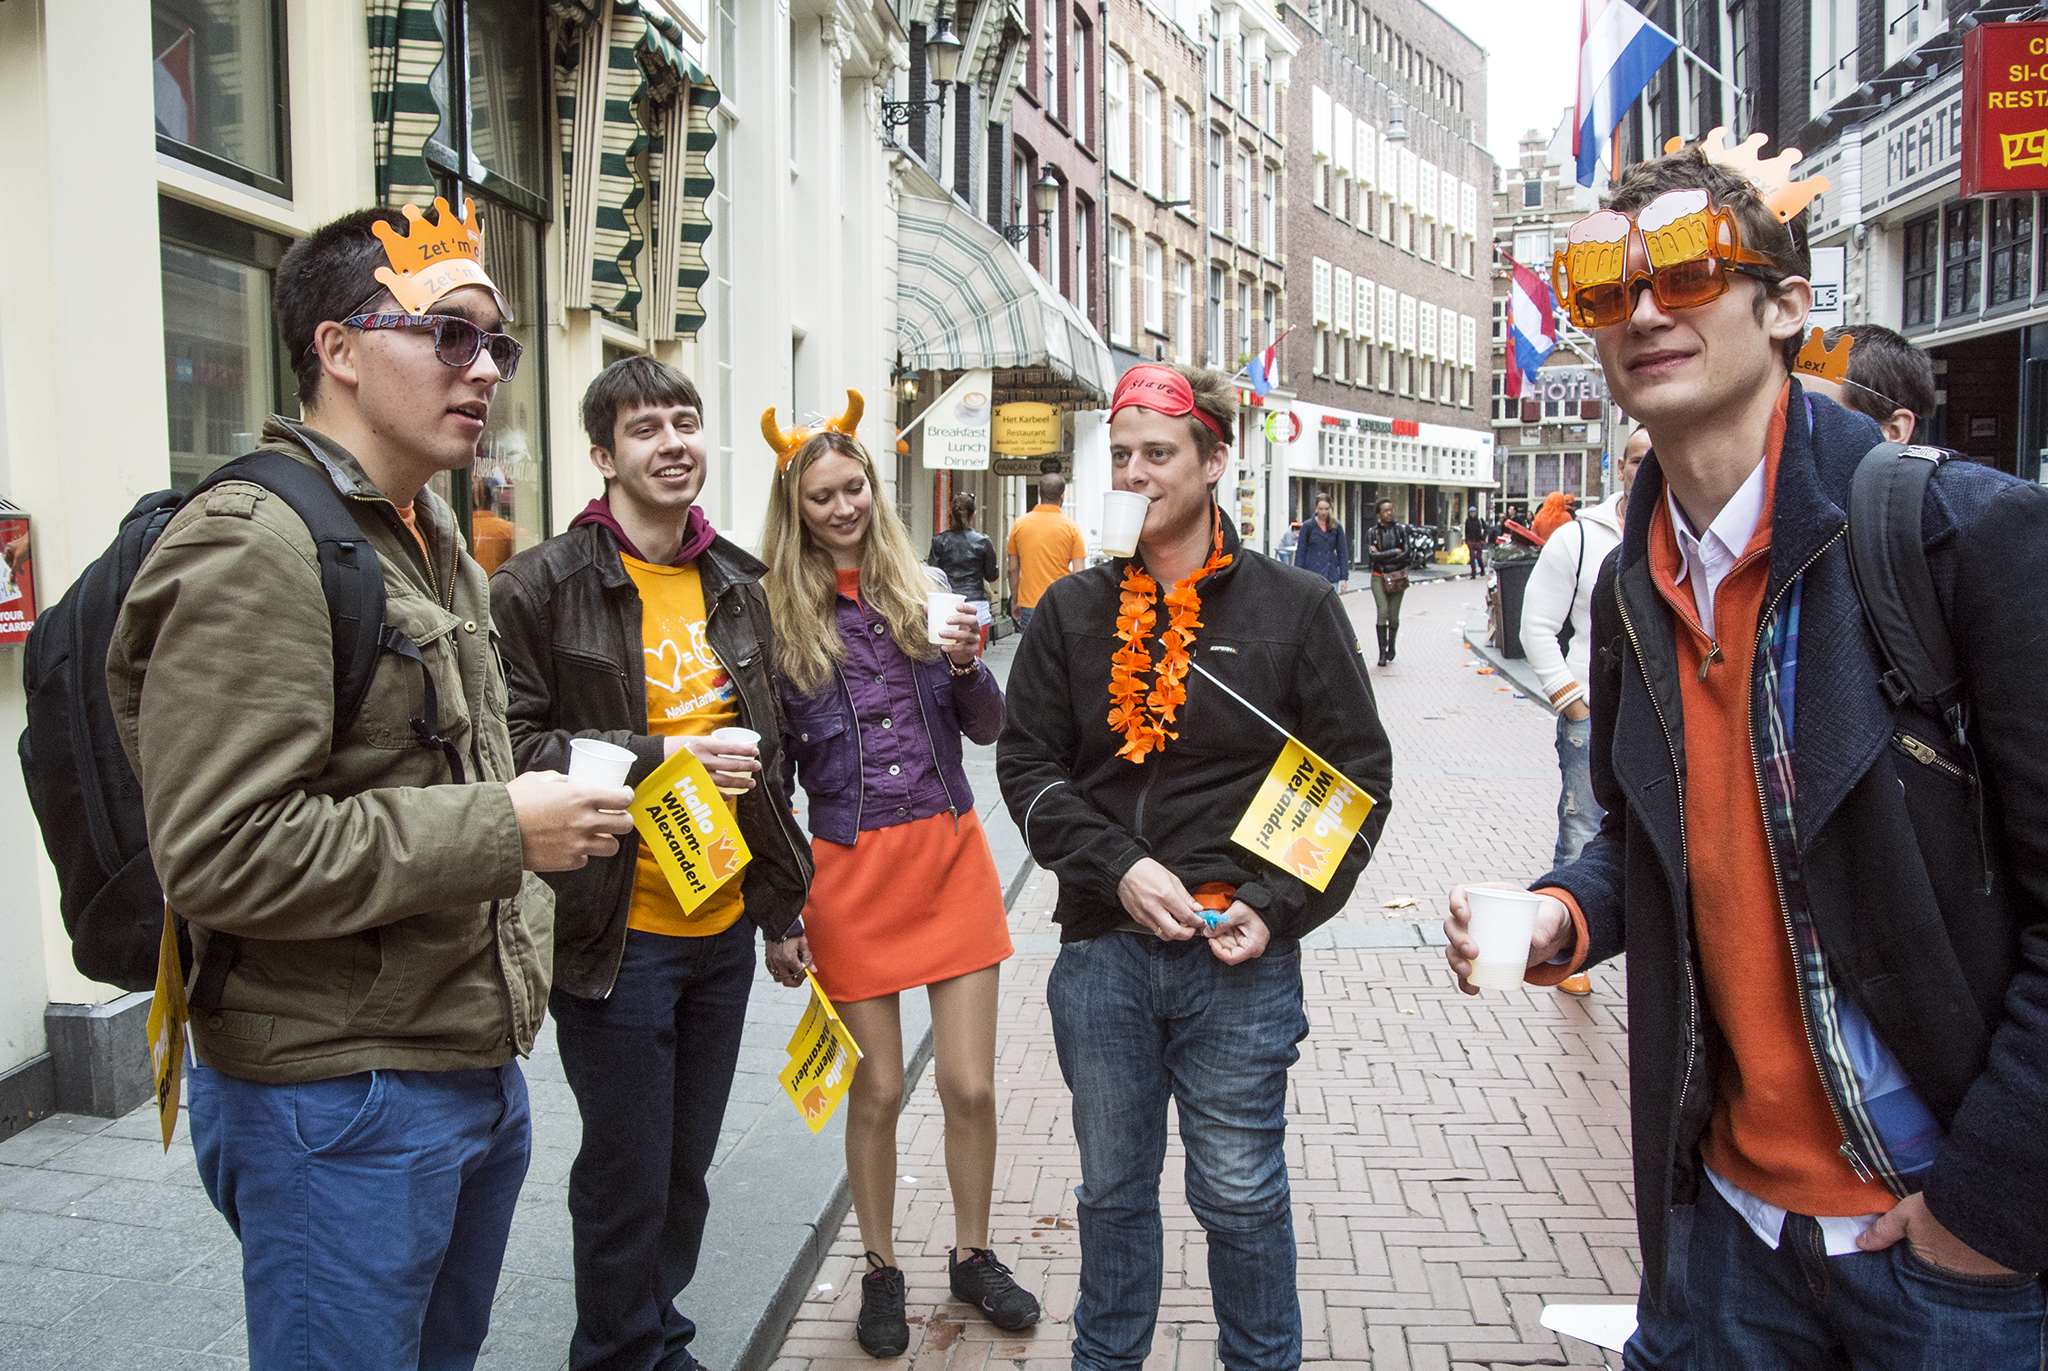 Several people drinking on the street while being dressed up for King's Day